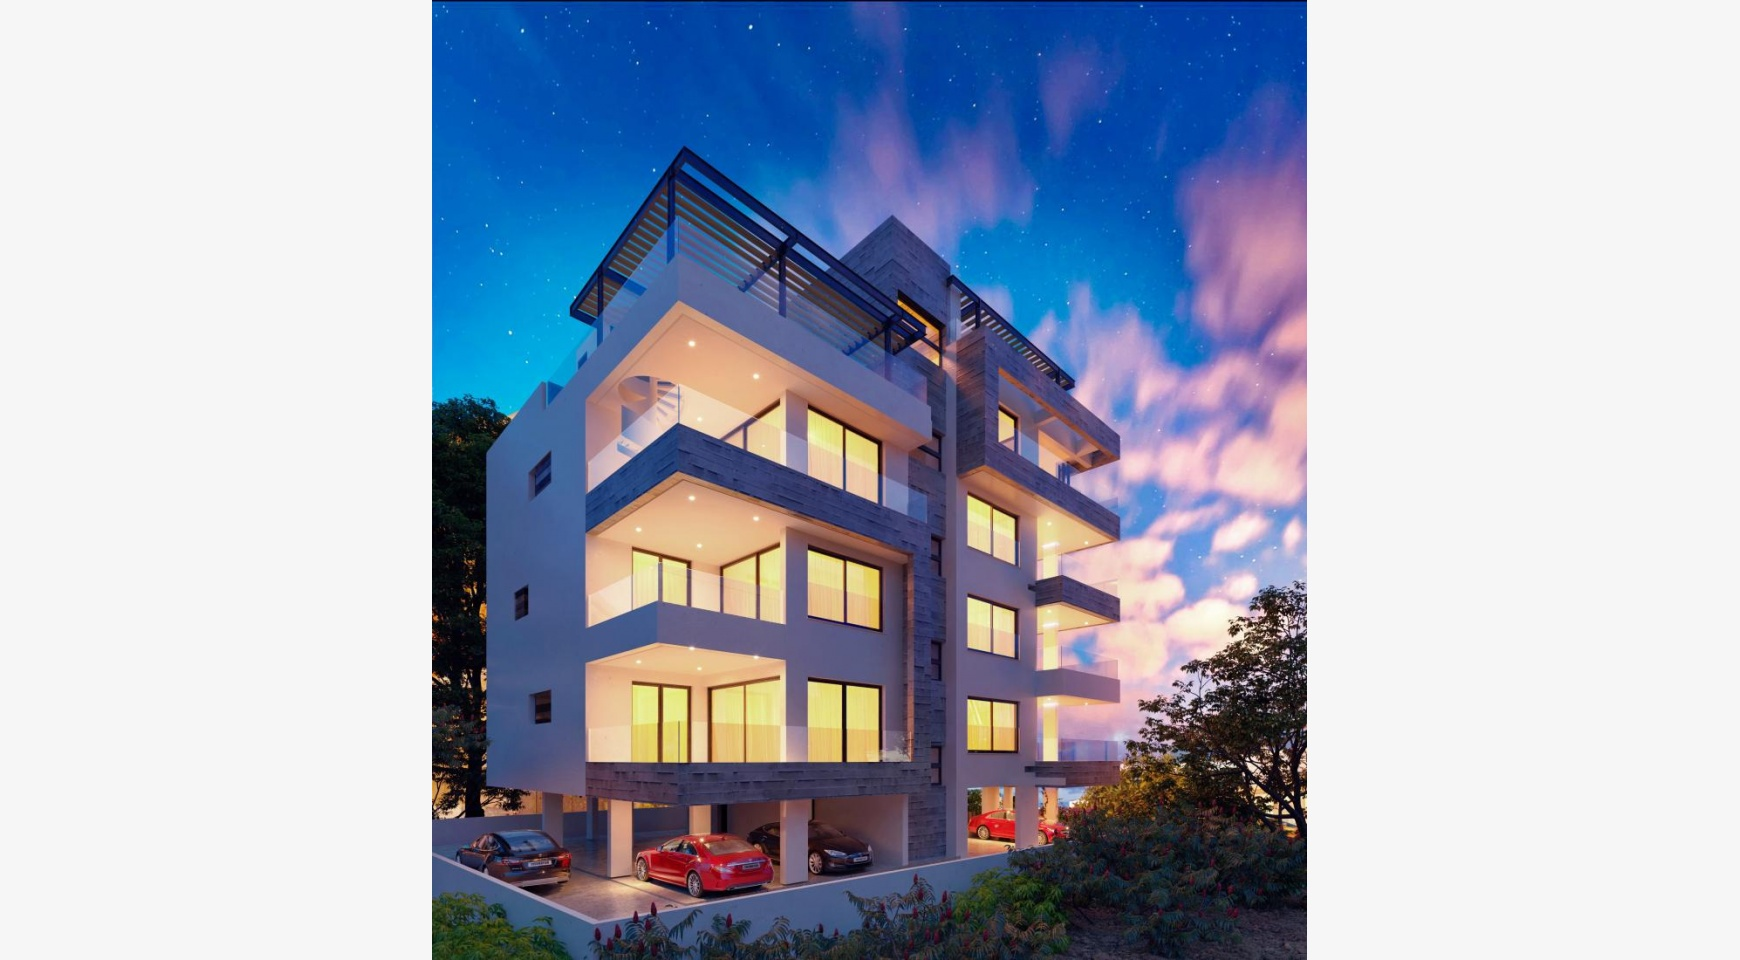 New 3 Bedroom Apartment in a Contemporary Building near the Sea - 3